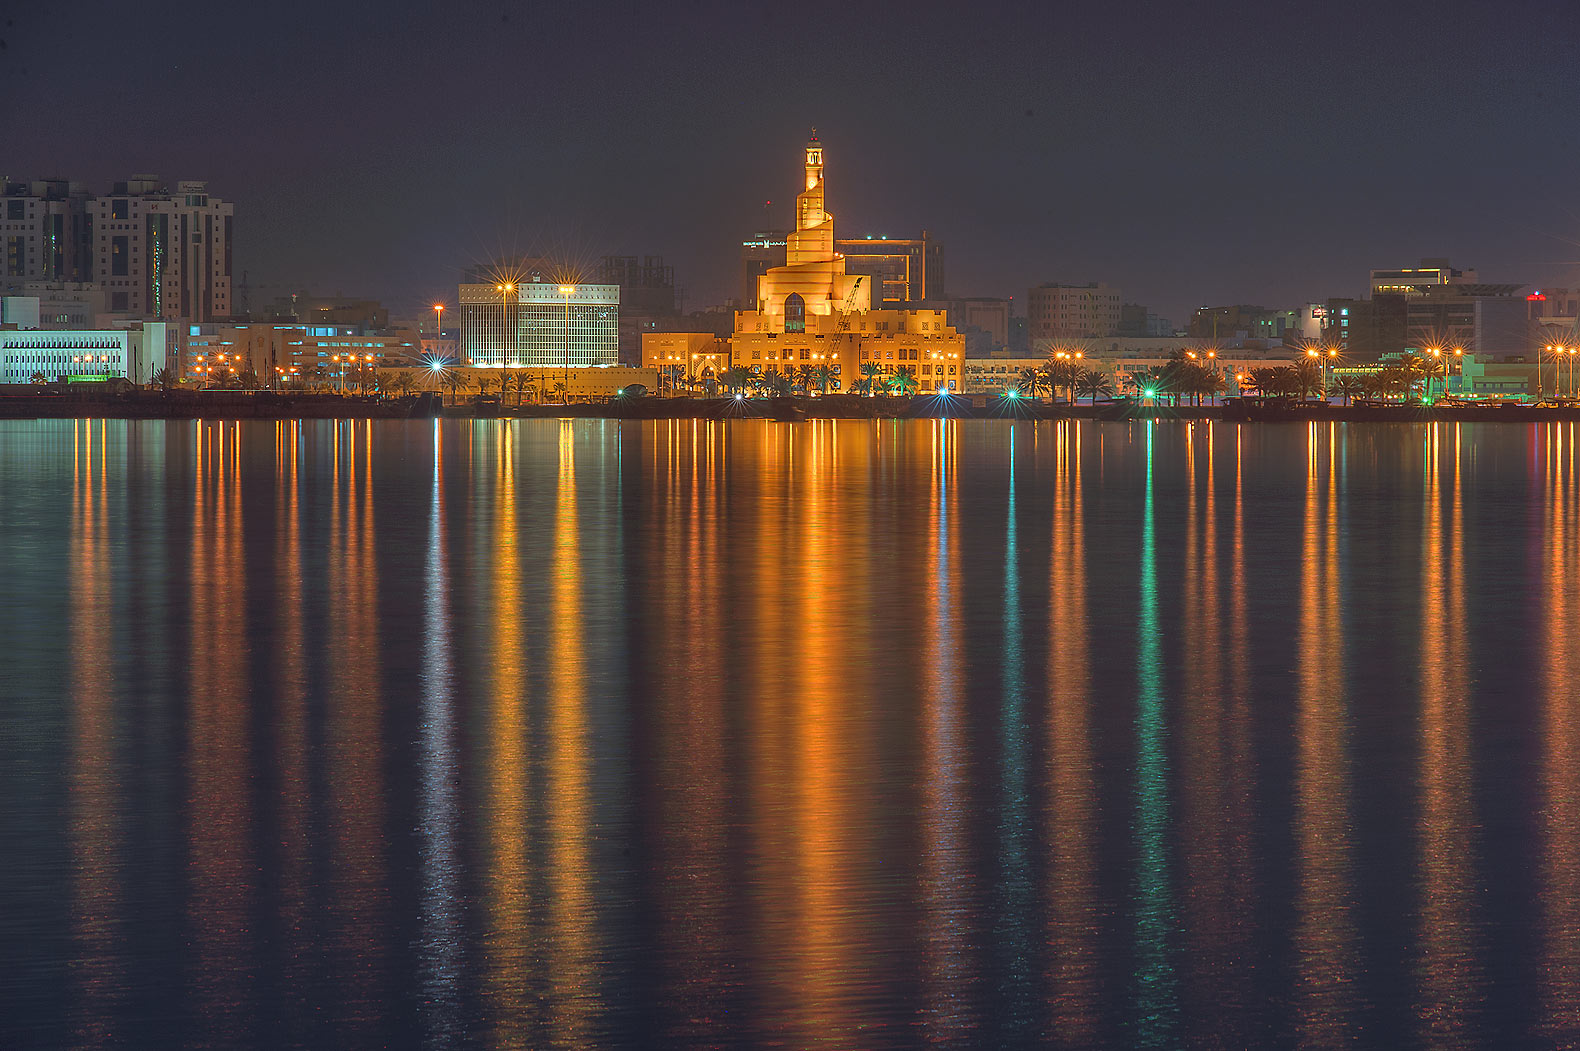 Reflection of spiral mosque from Corniche promenade. Doha, Qatar